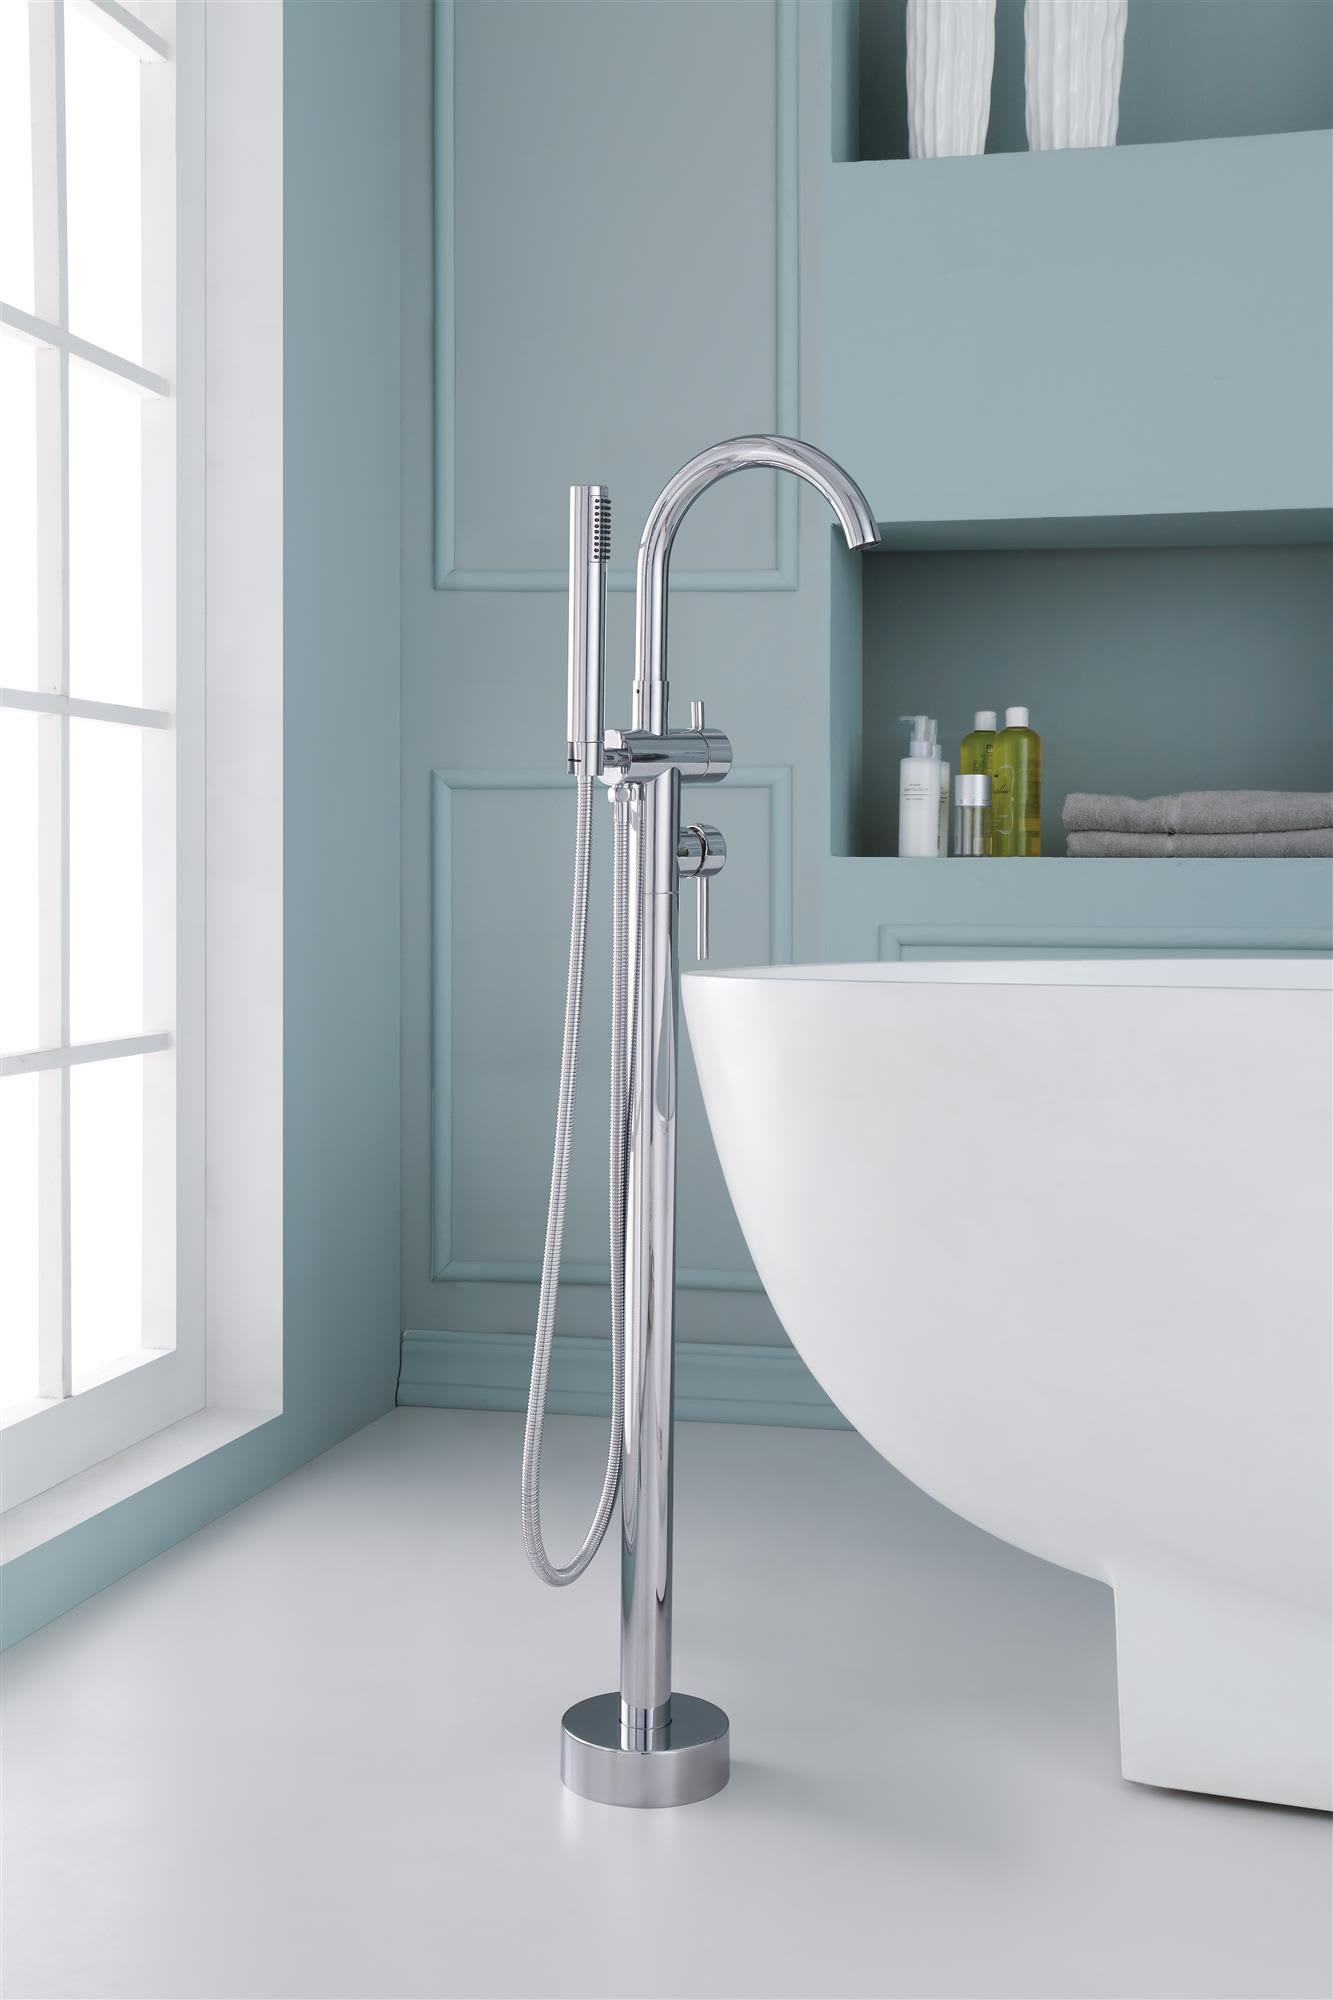 Ariel PV068M44C1 Chrome Ariel Floor Mounted Tub Faucet with Metal ...